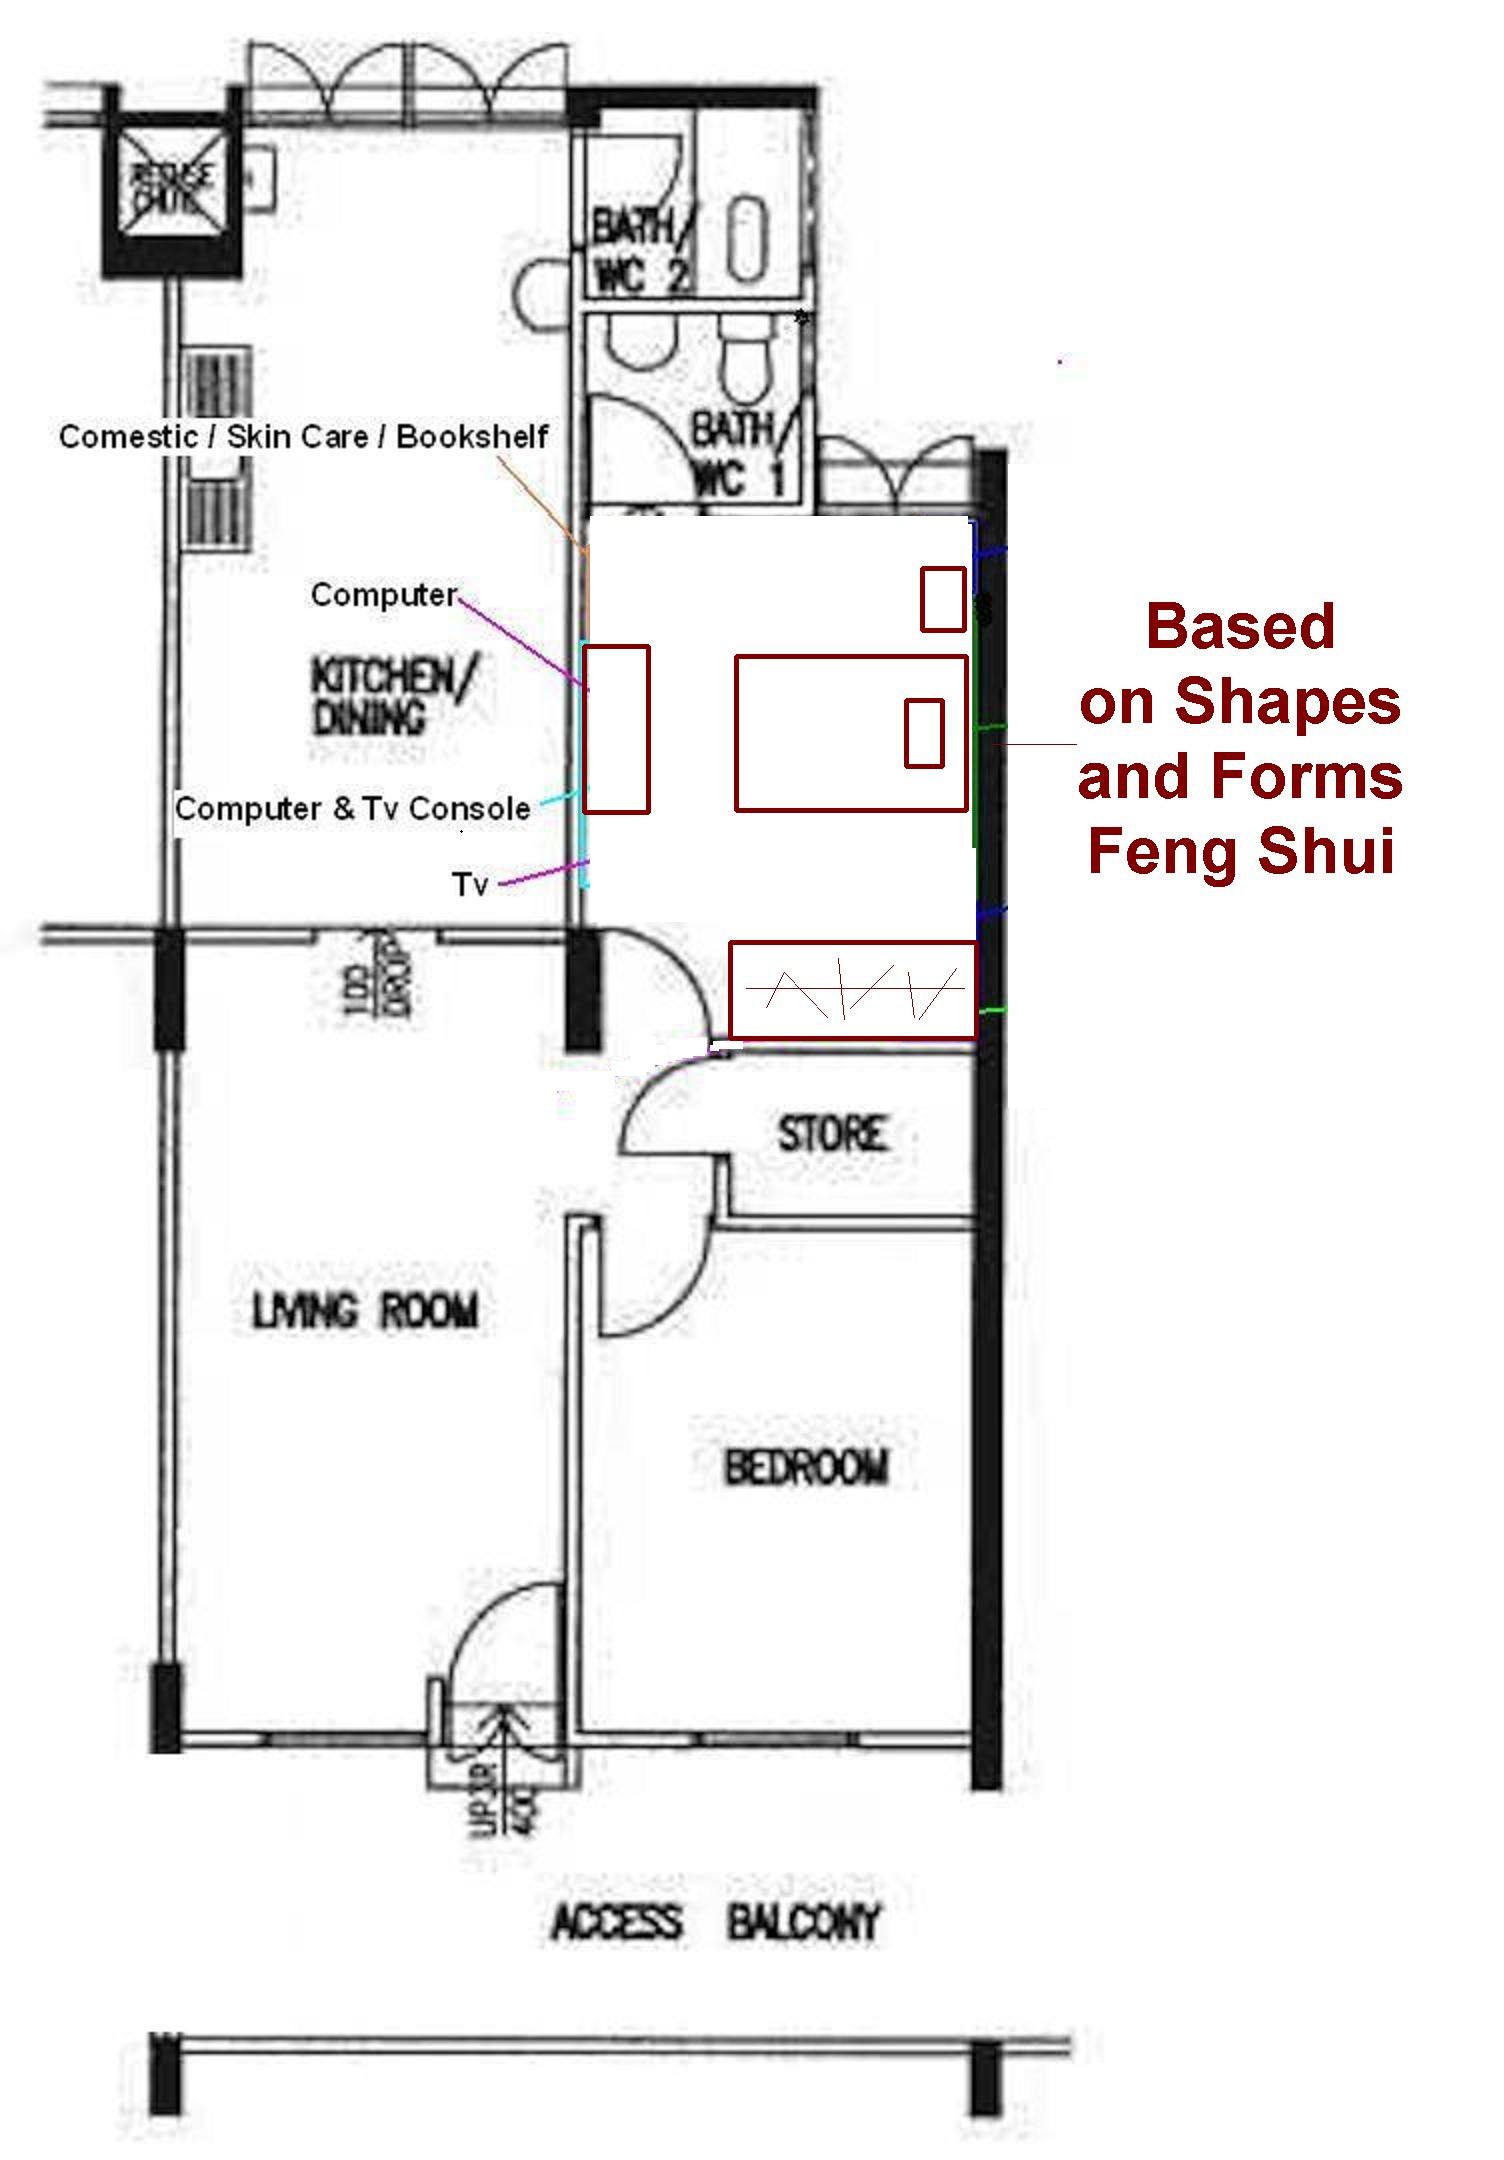 Best ideas about Feng Shui Bedroom Layout . Save or Pin Bedroom Feng Shui General Help FengShui Geomancy Net Now.